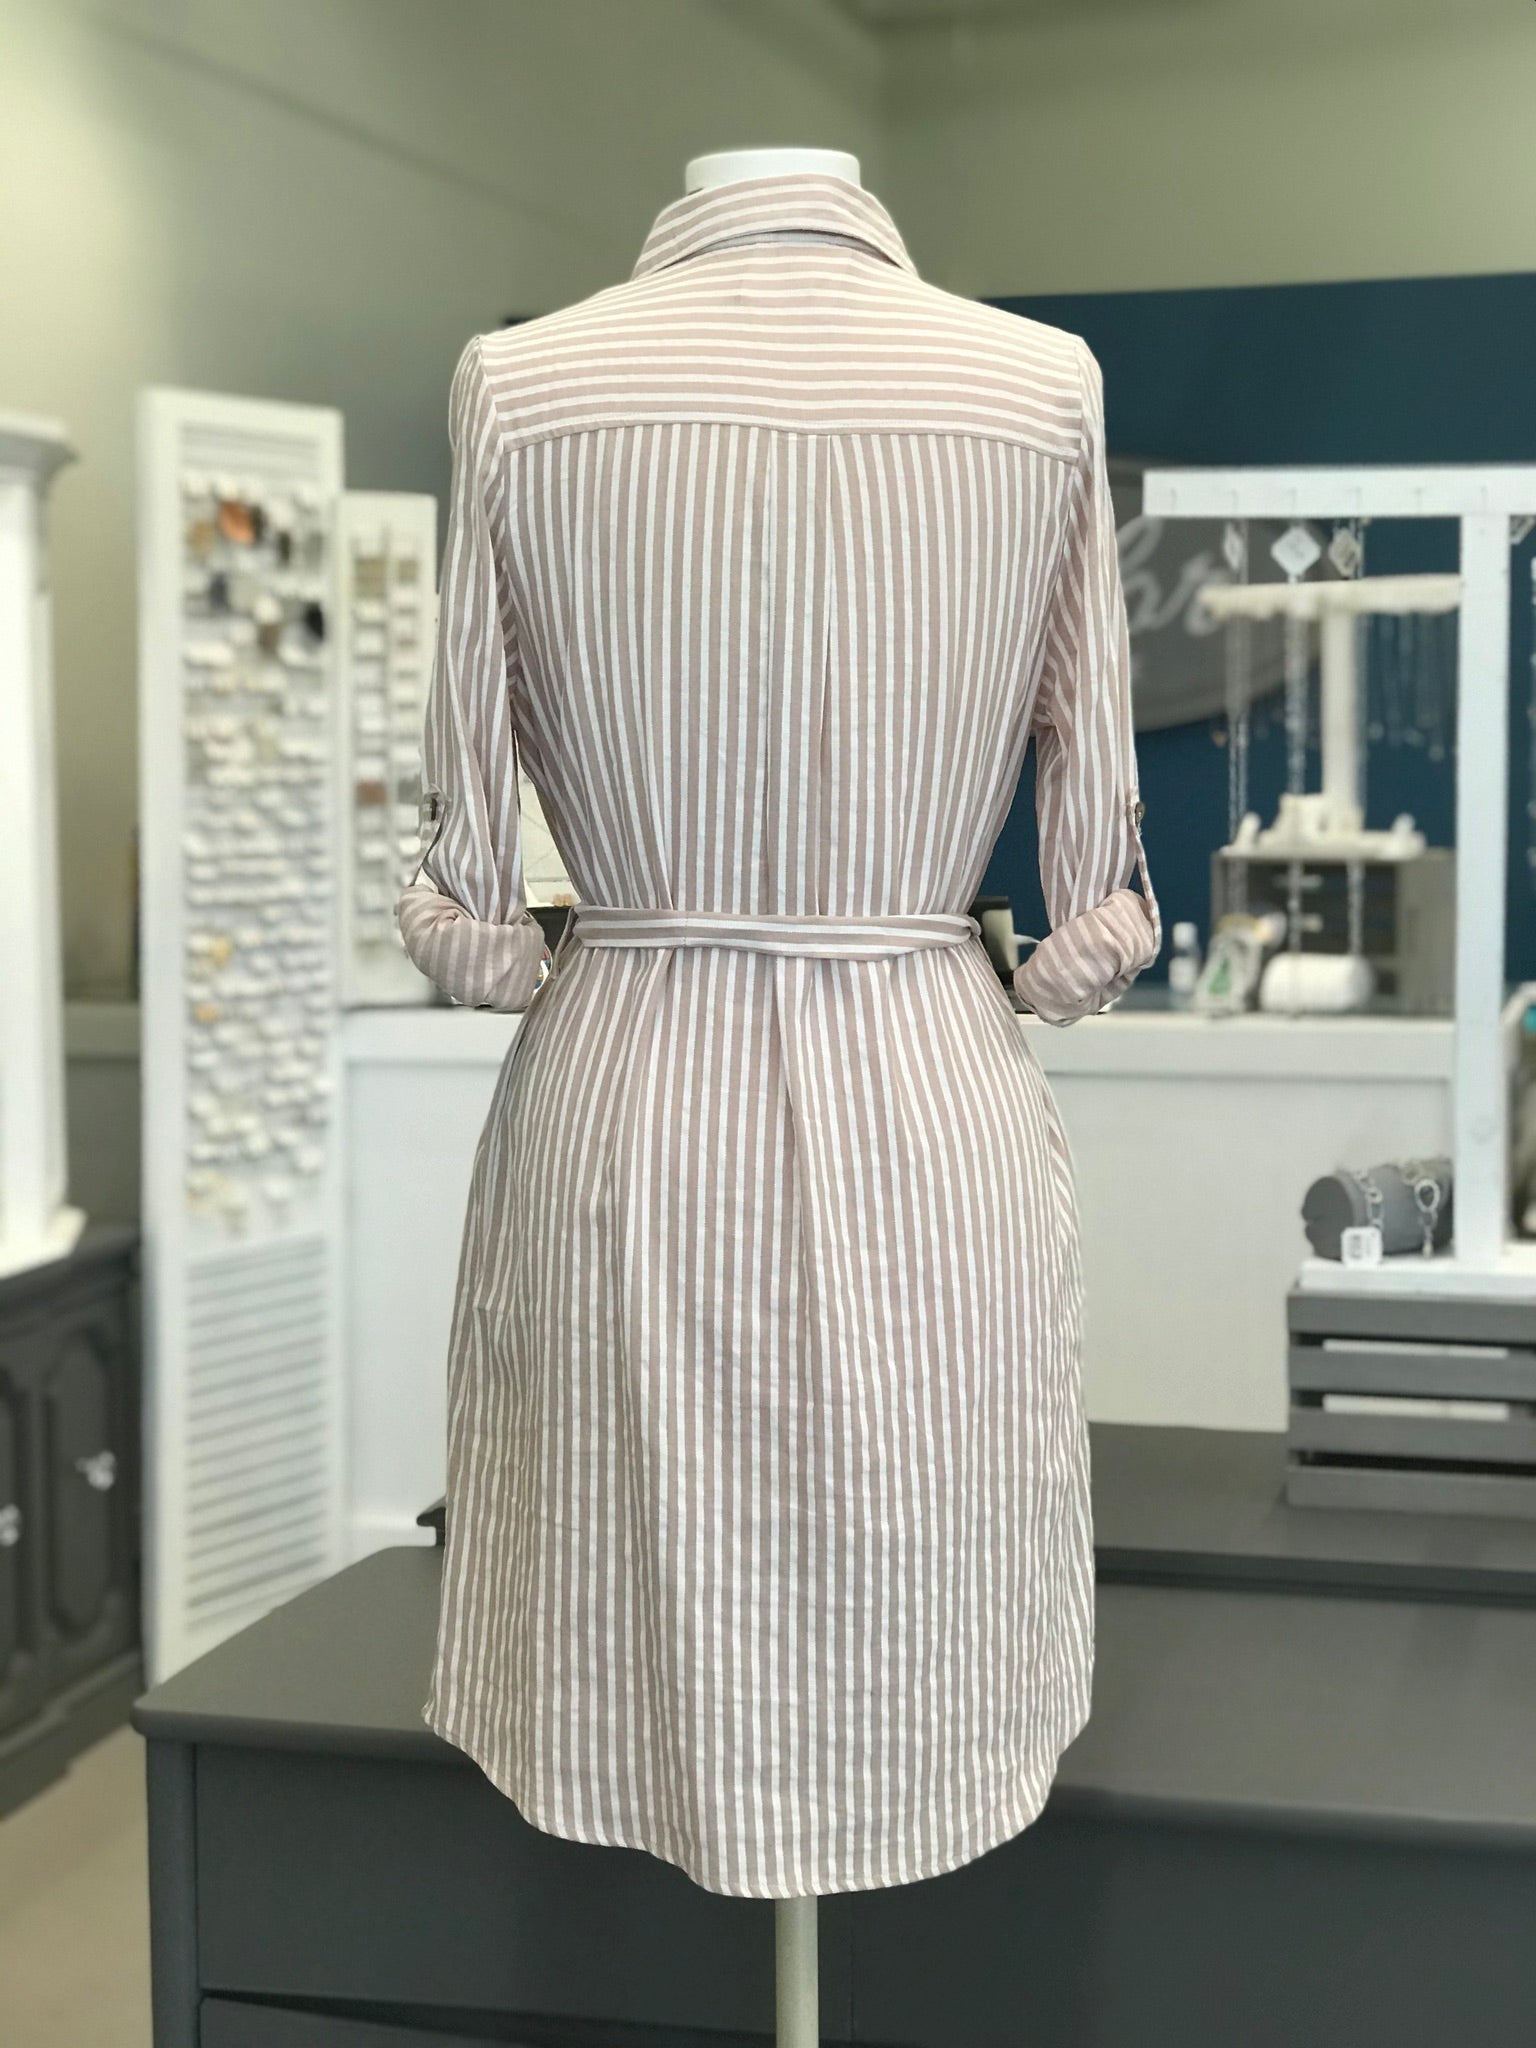 Sami Blush and White Striped Dress